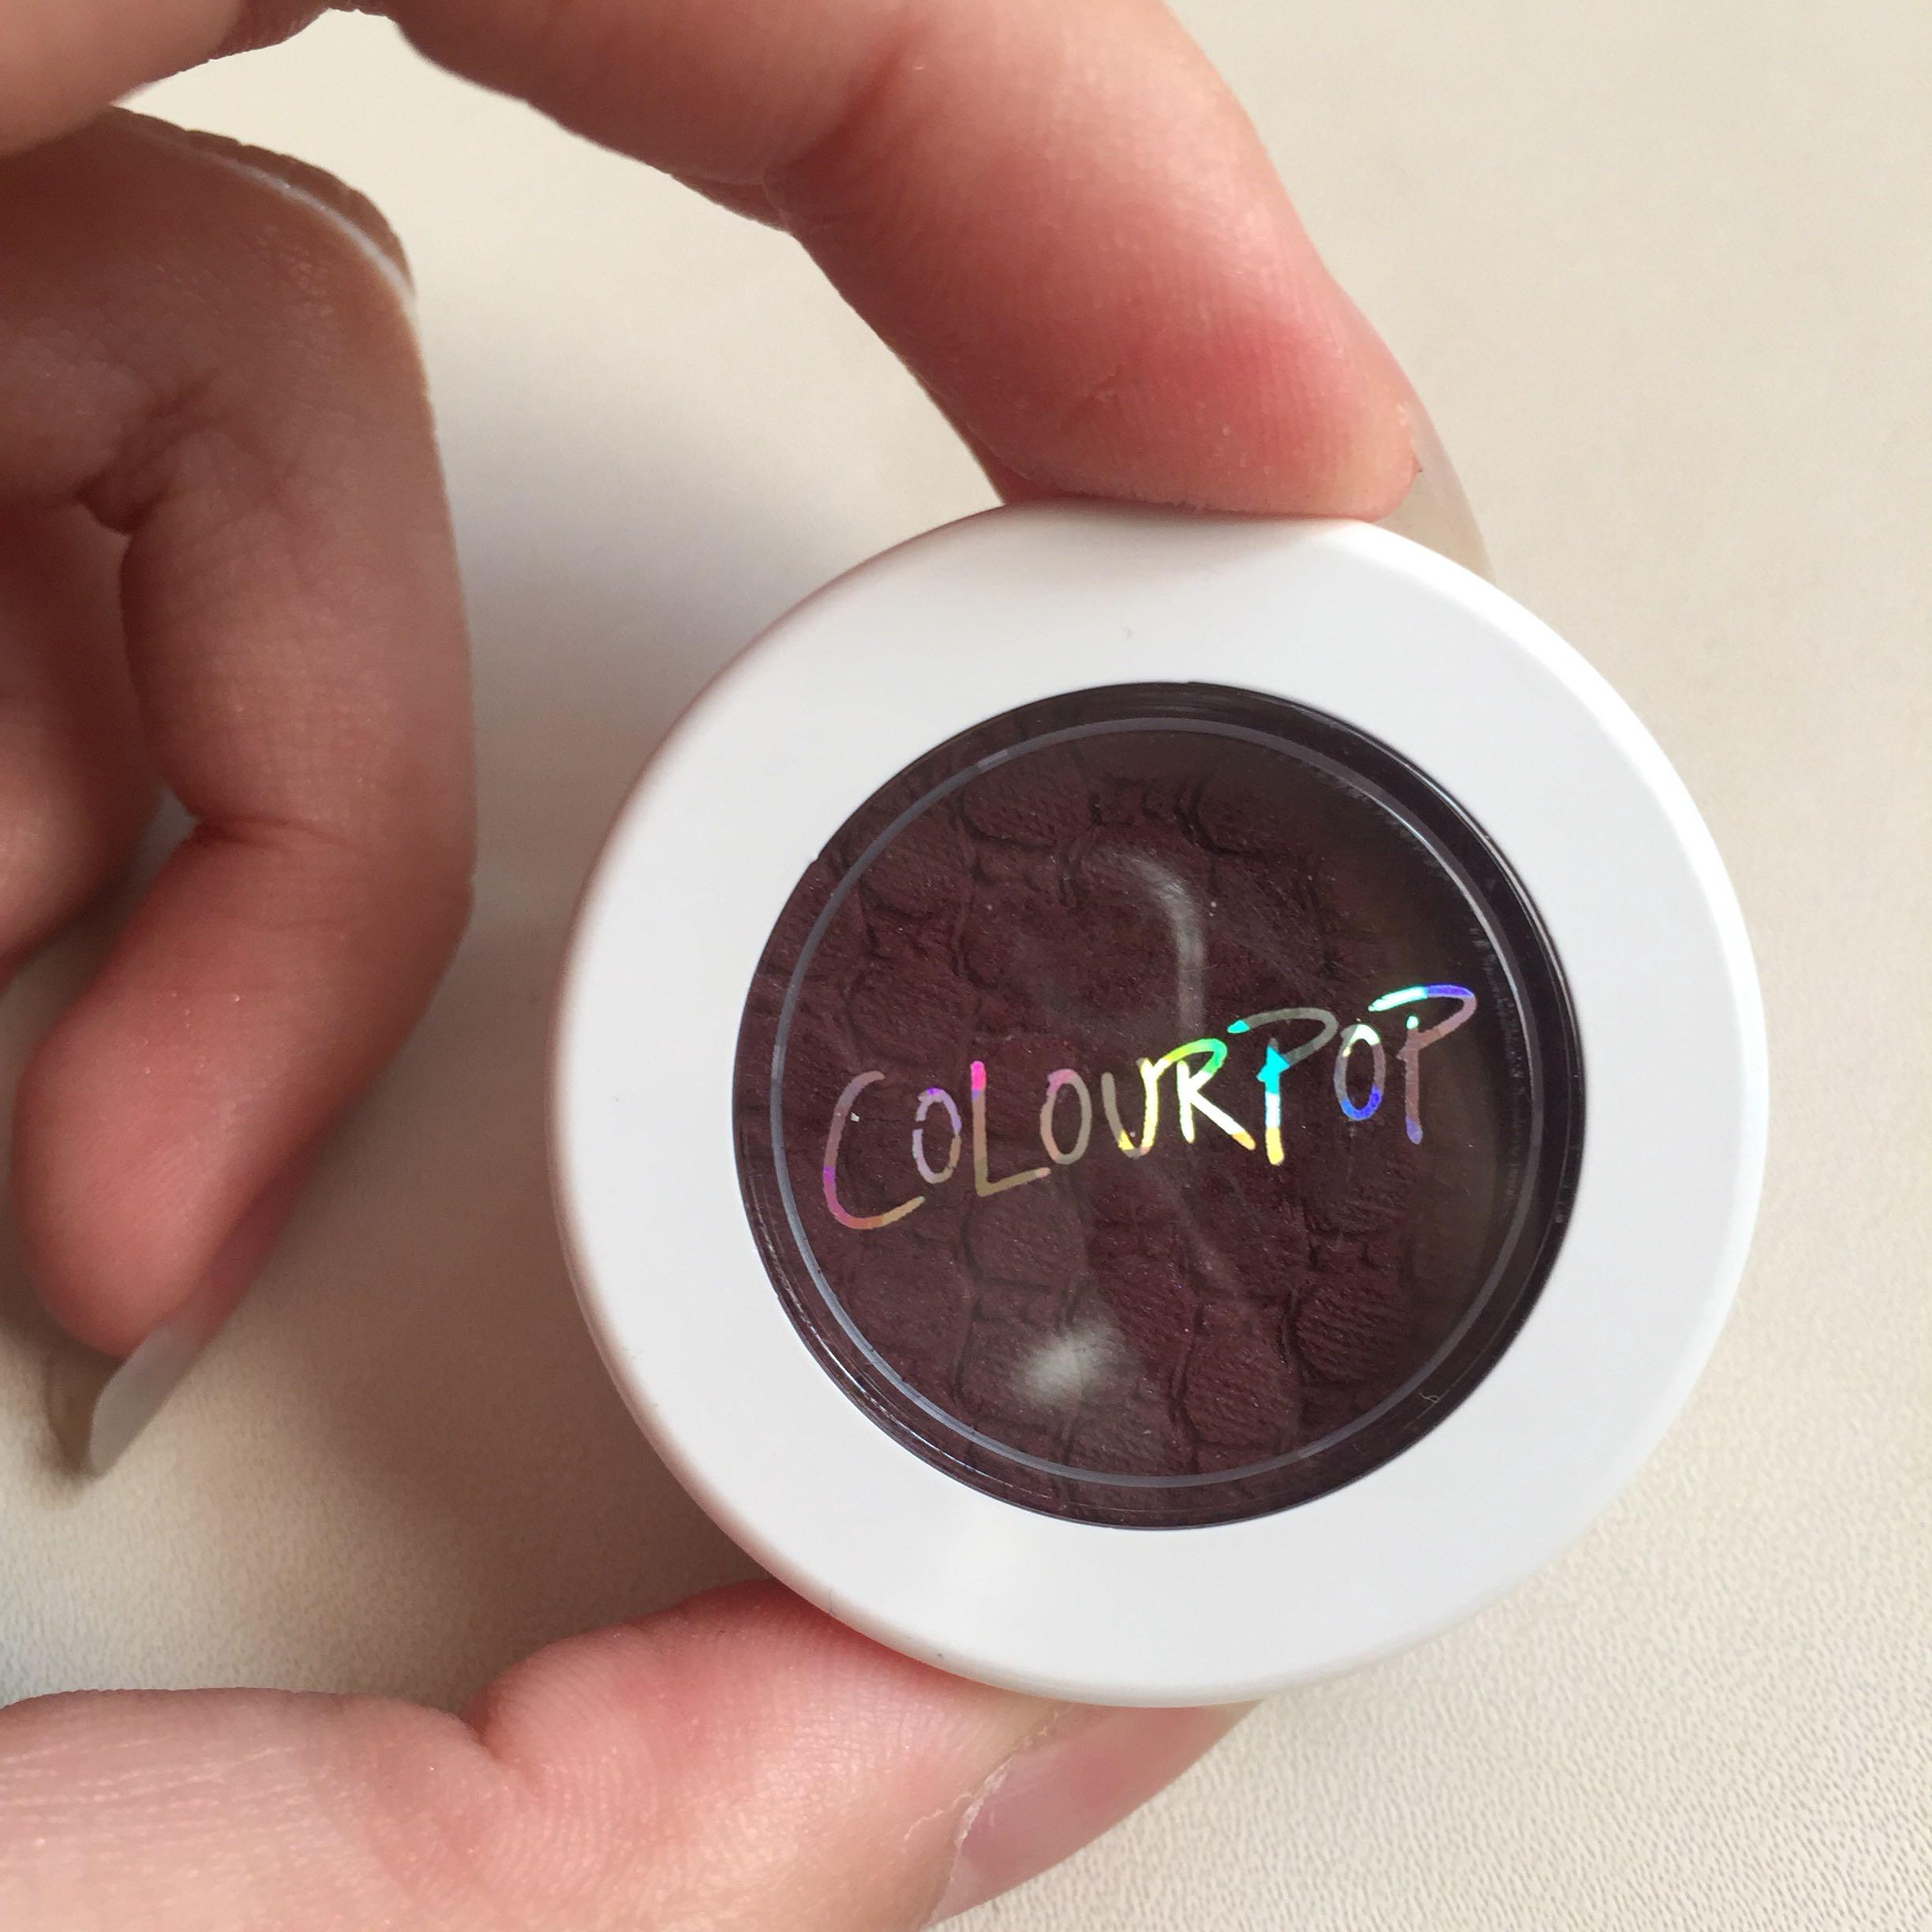 Colourpop: Super shock shadow in Central Perk